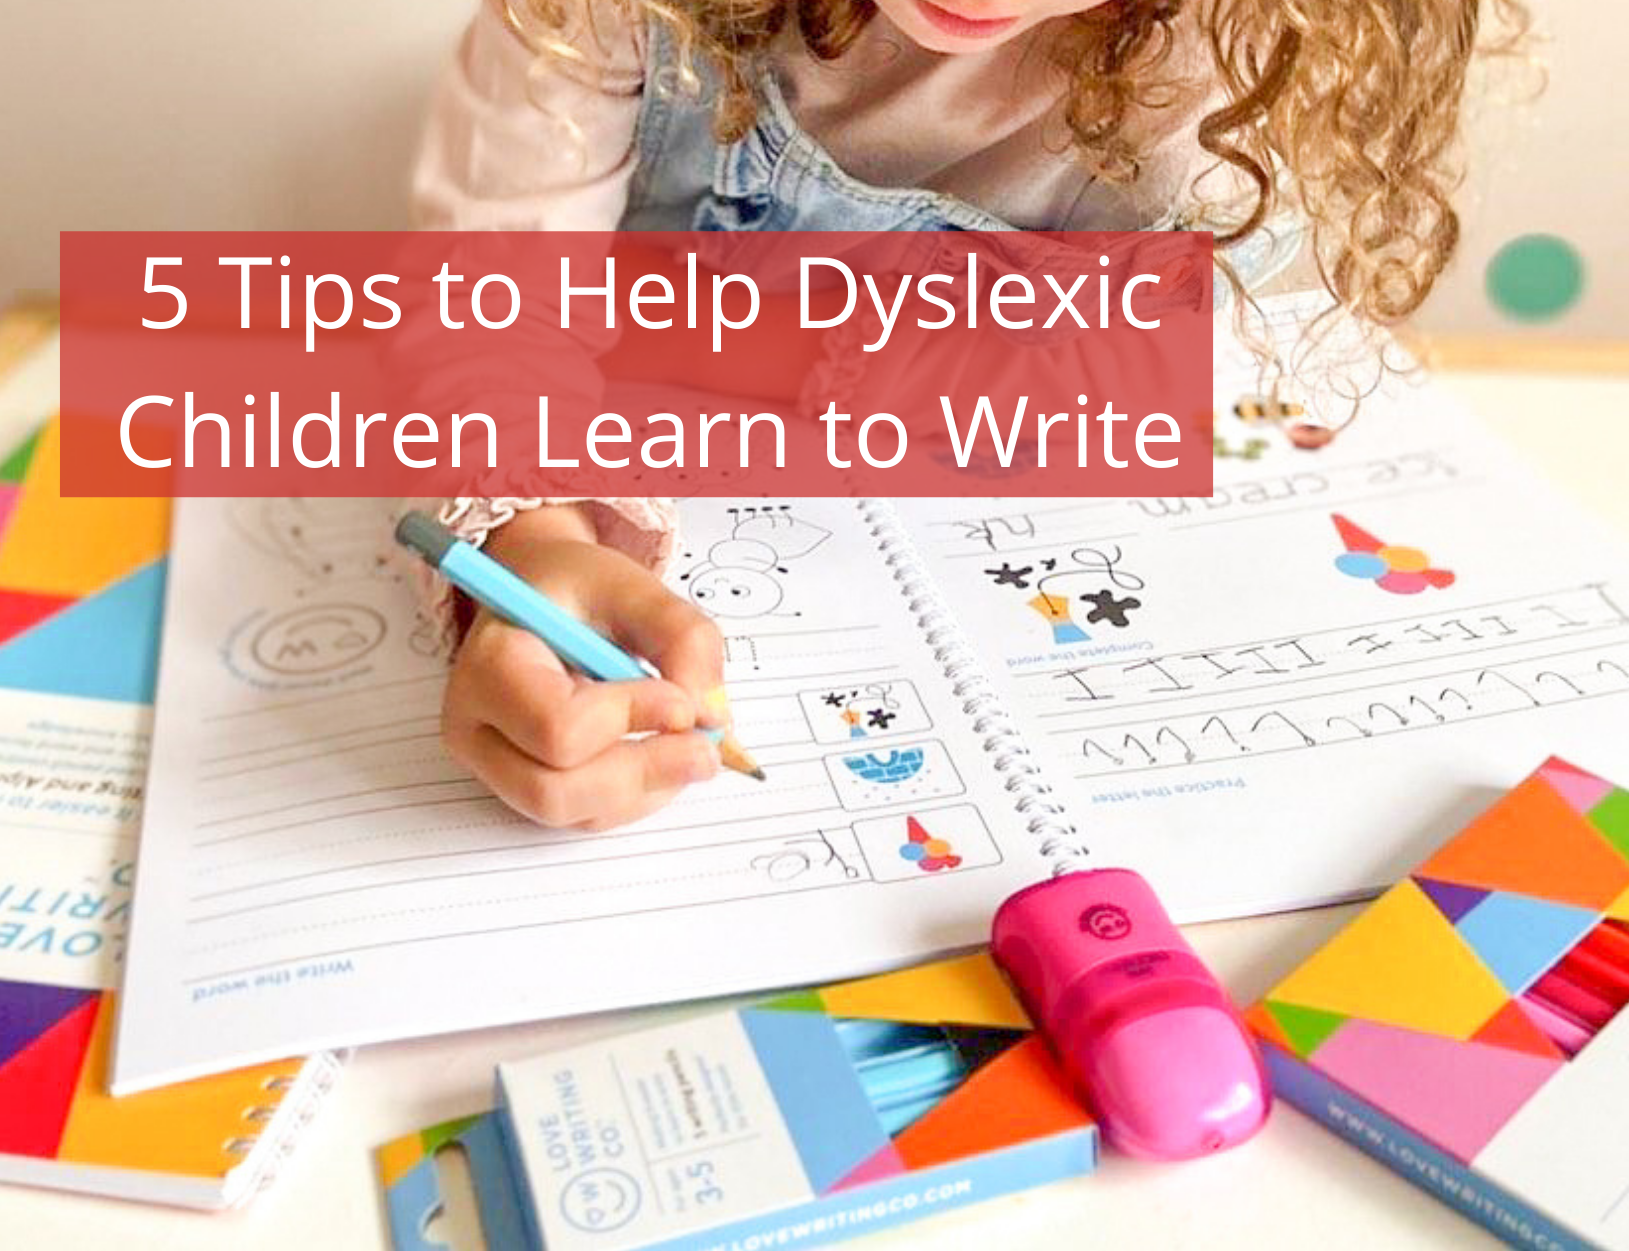 5 Tips to Help Dyslexic Children Learn to Write